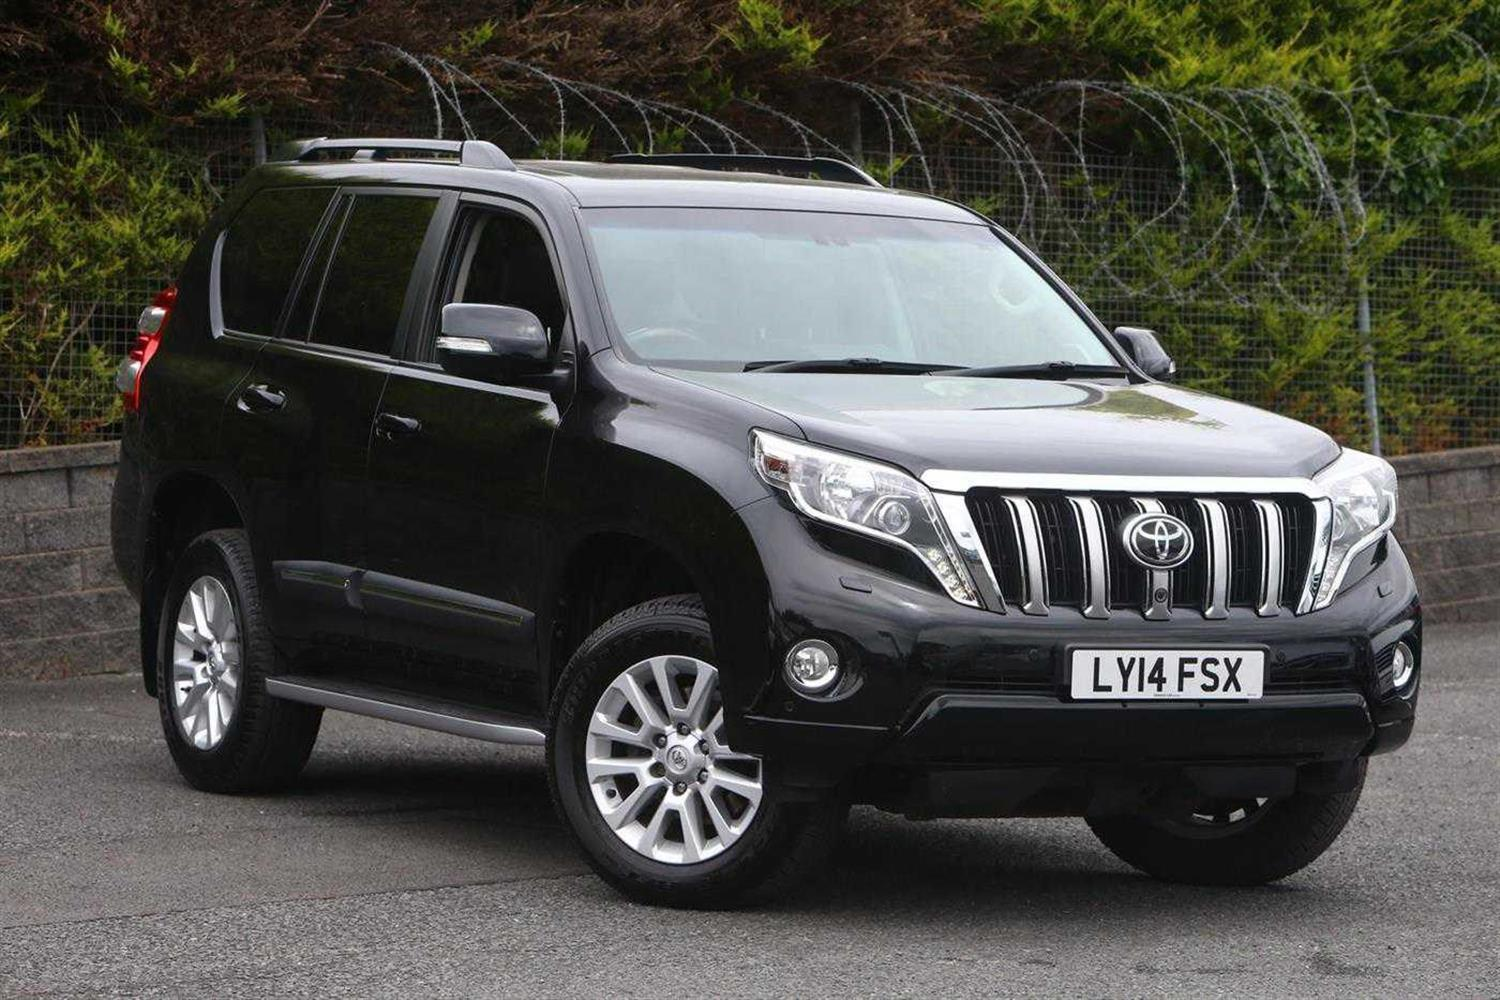 Toyota Land Cruiser 3.0 D-4D 4X4 Invincible Estate Diesel Black